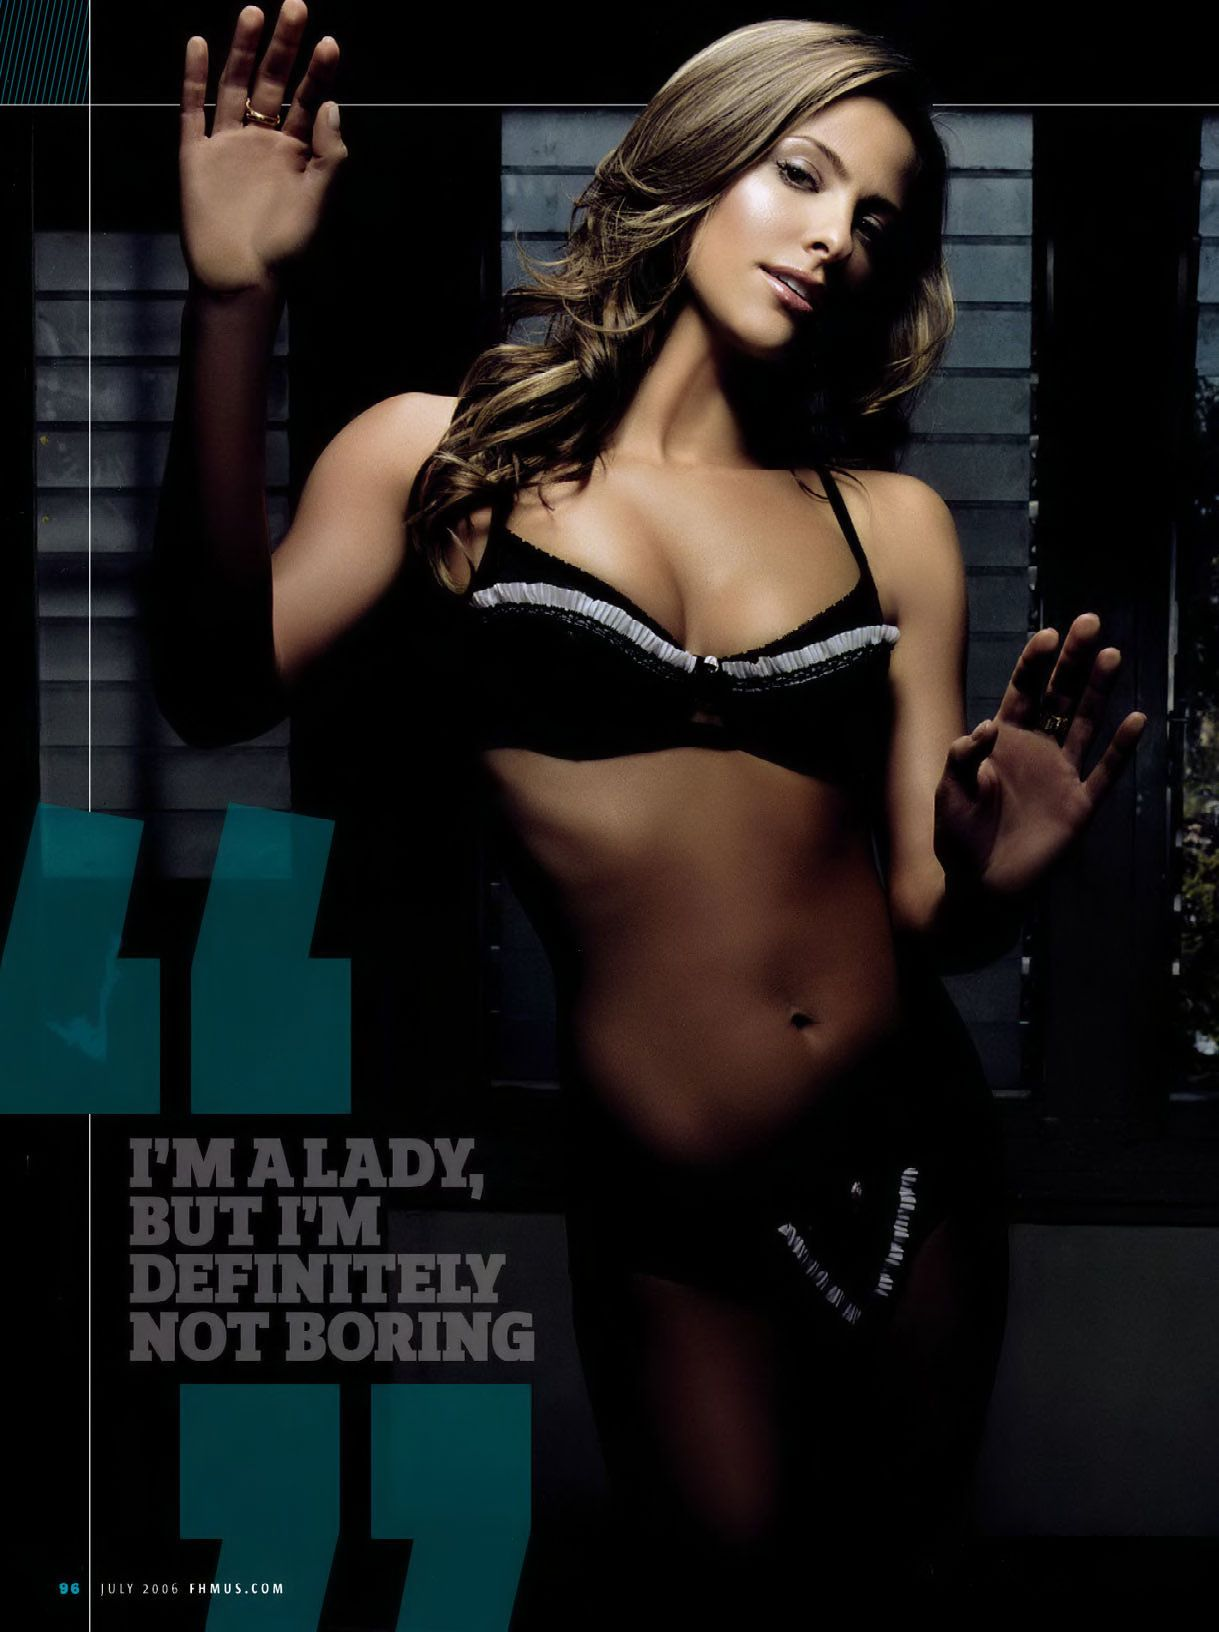 Naked pictures of jill wagner